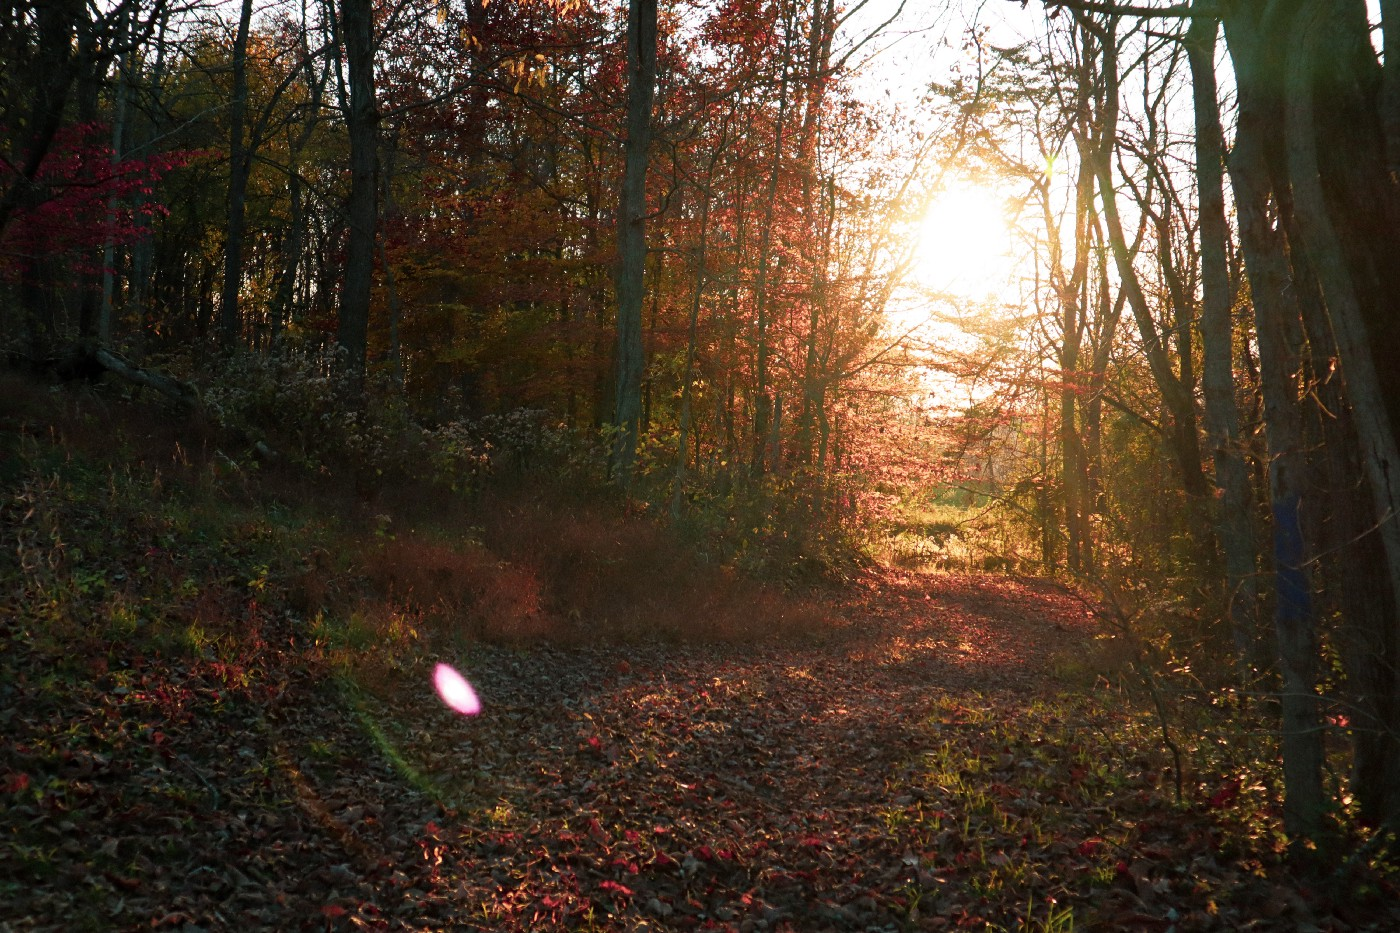 View of a forest path with sunlight beaming down